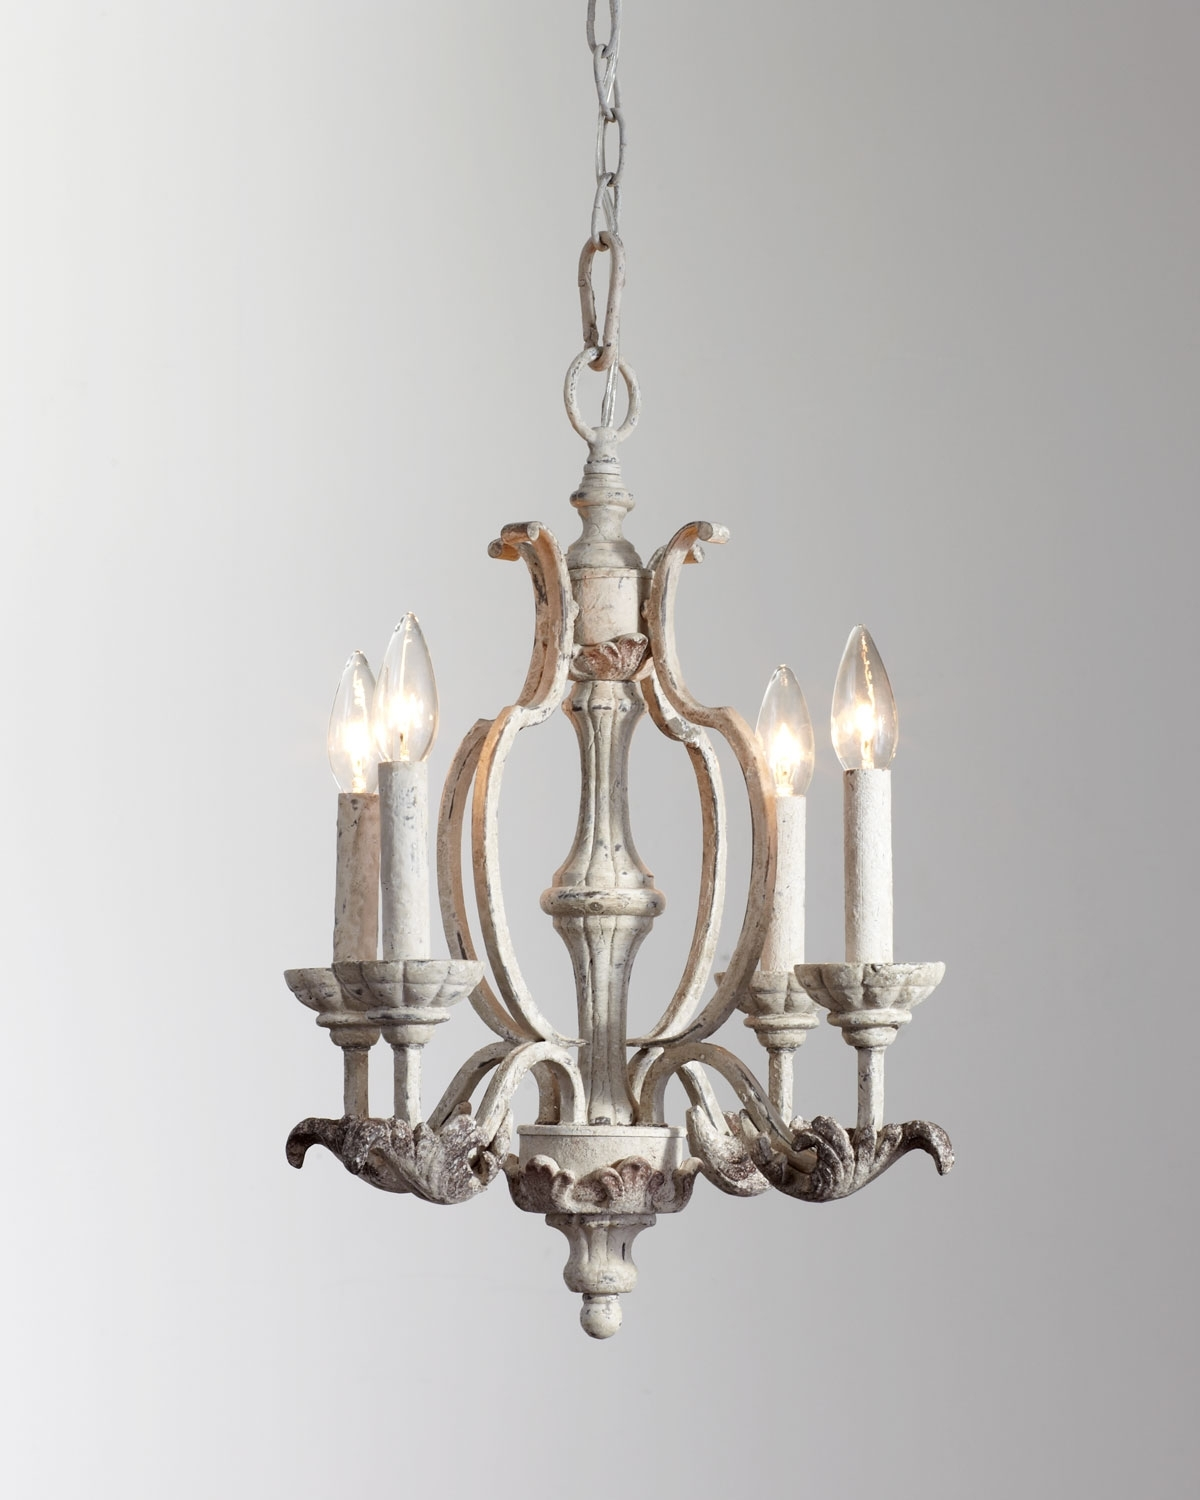 Small Bronze Chandelier With Regard To Most Popular Chandelier: Excellent Small Chandeliers Mini Chandelier For Lockers (View 7 of 15)